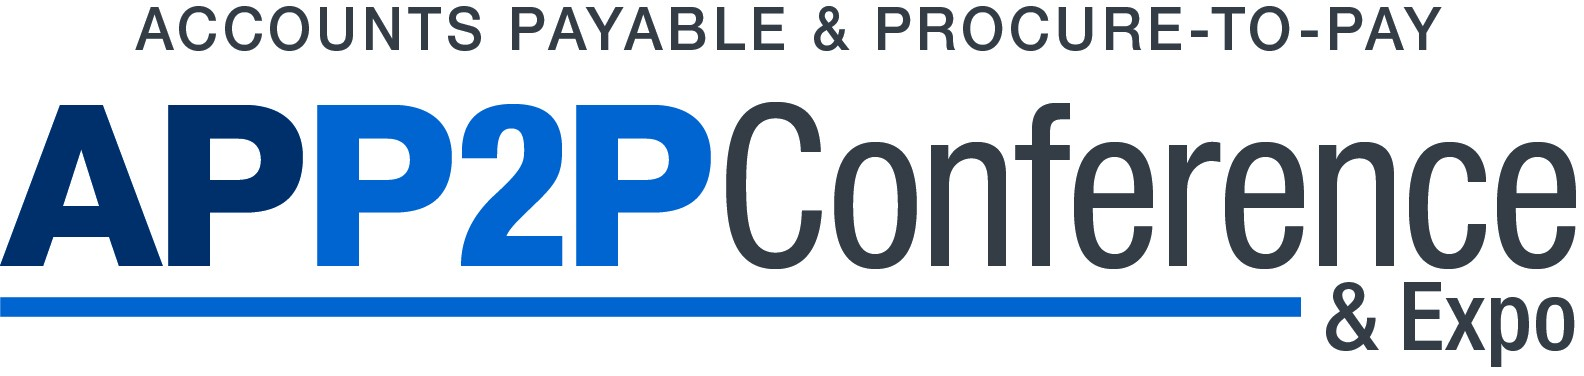 AP & P2P Conference & Expo Fall